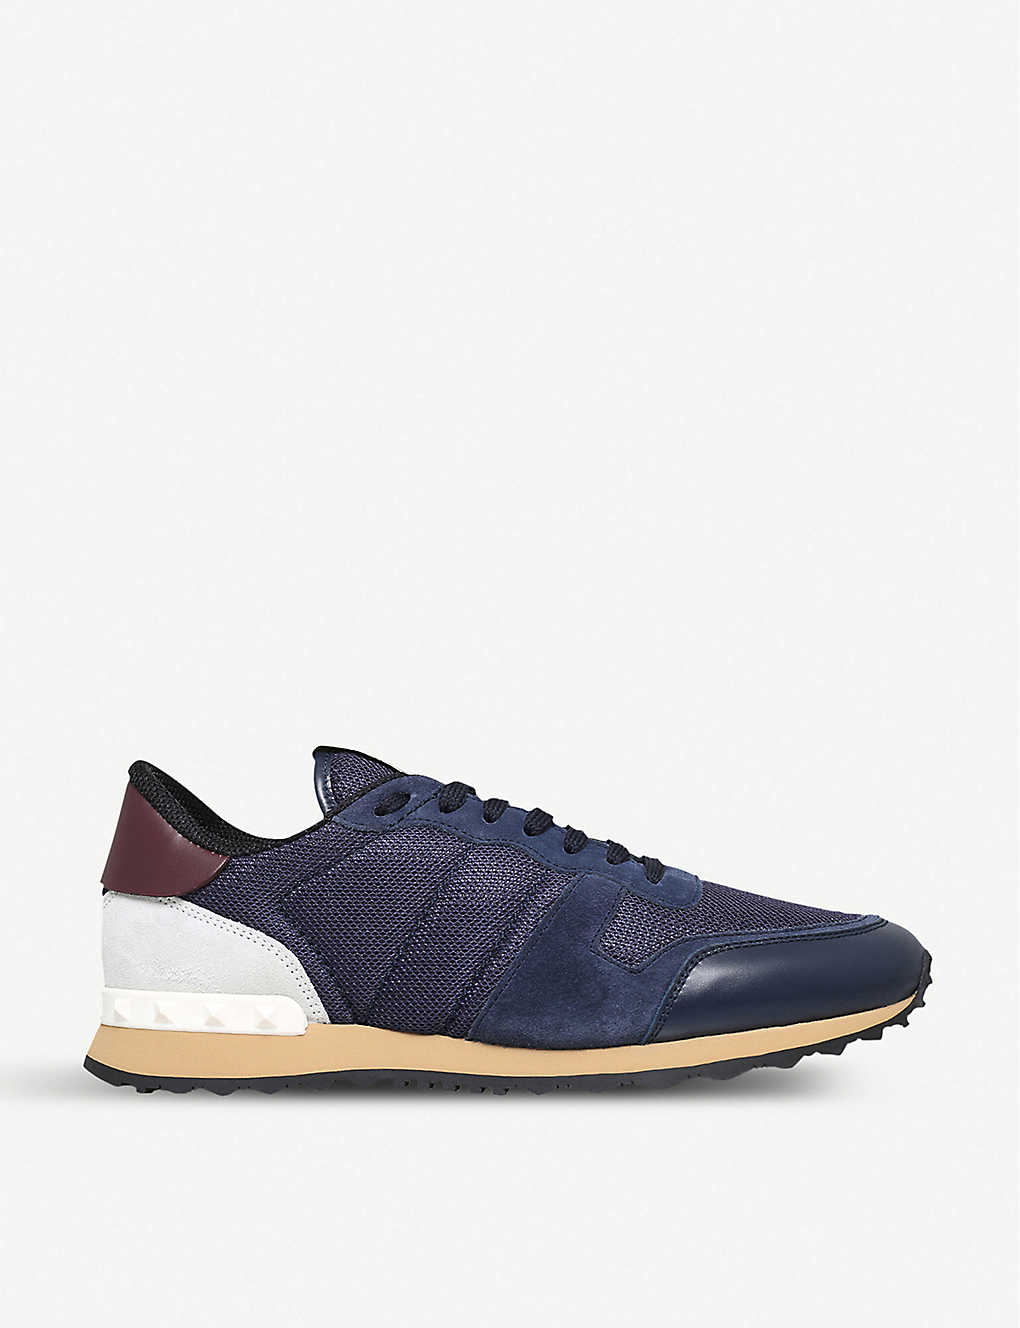 ba542addae35a VALENTINO - Garavani Rockrunner suede and mesh trainers | Selfridges.com